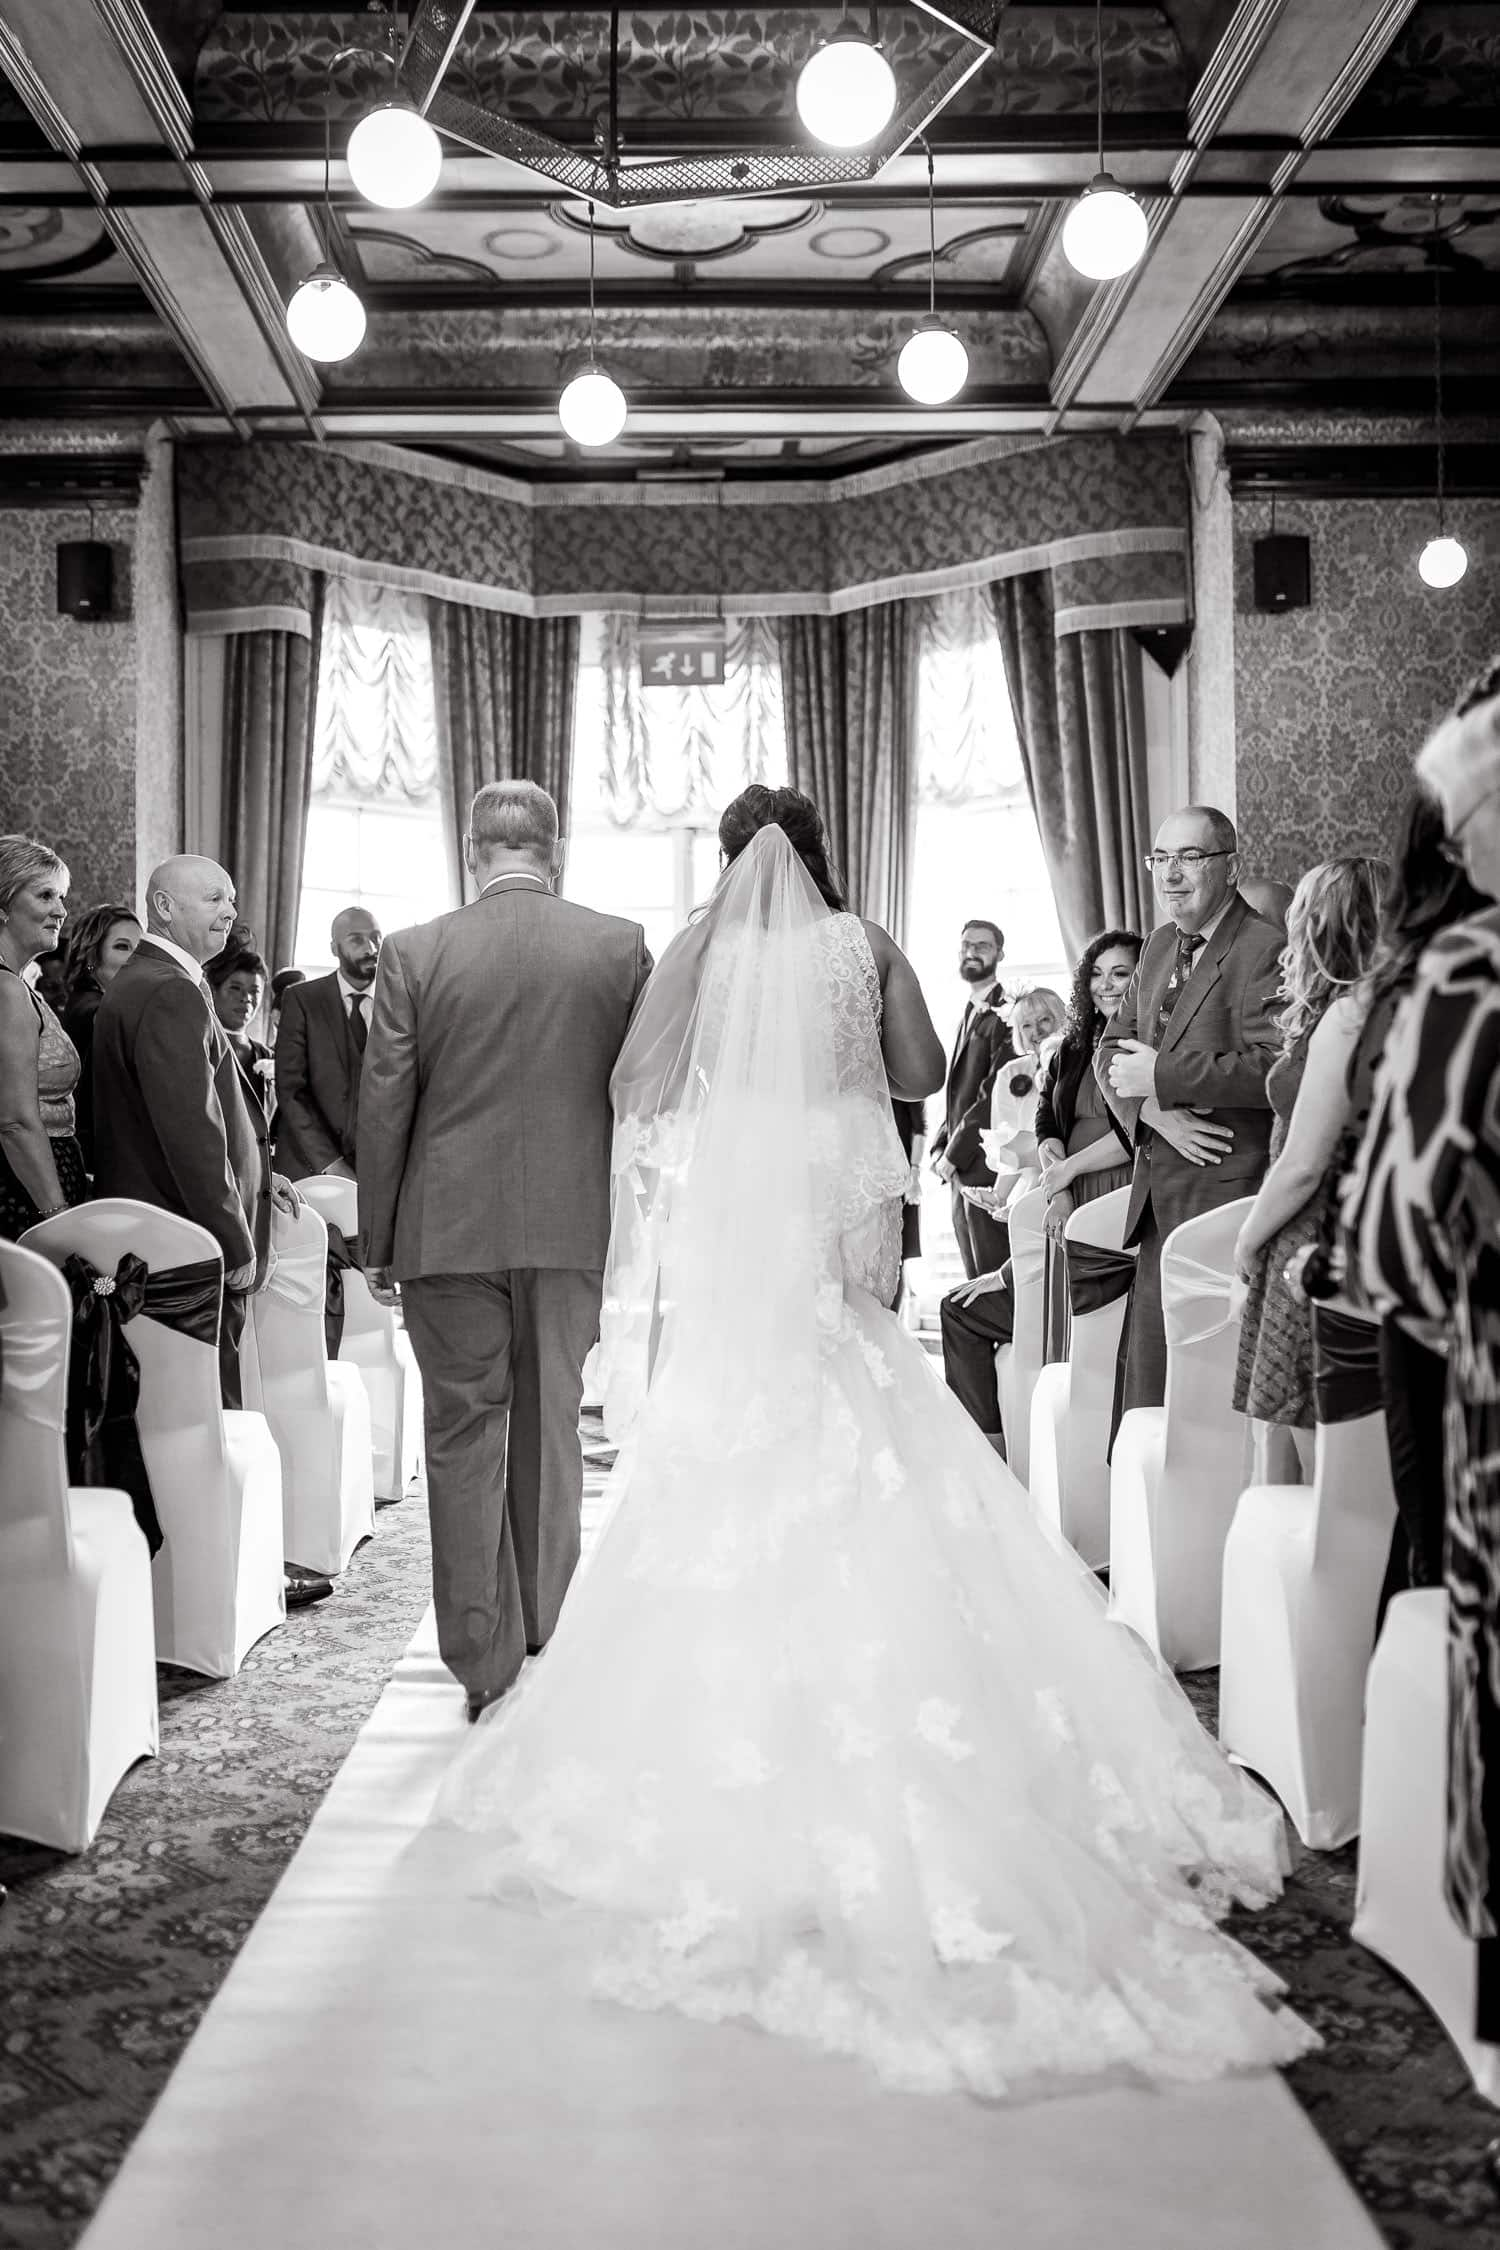 father leads bride down the aisle in wedding ceremony